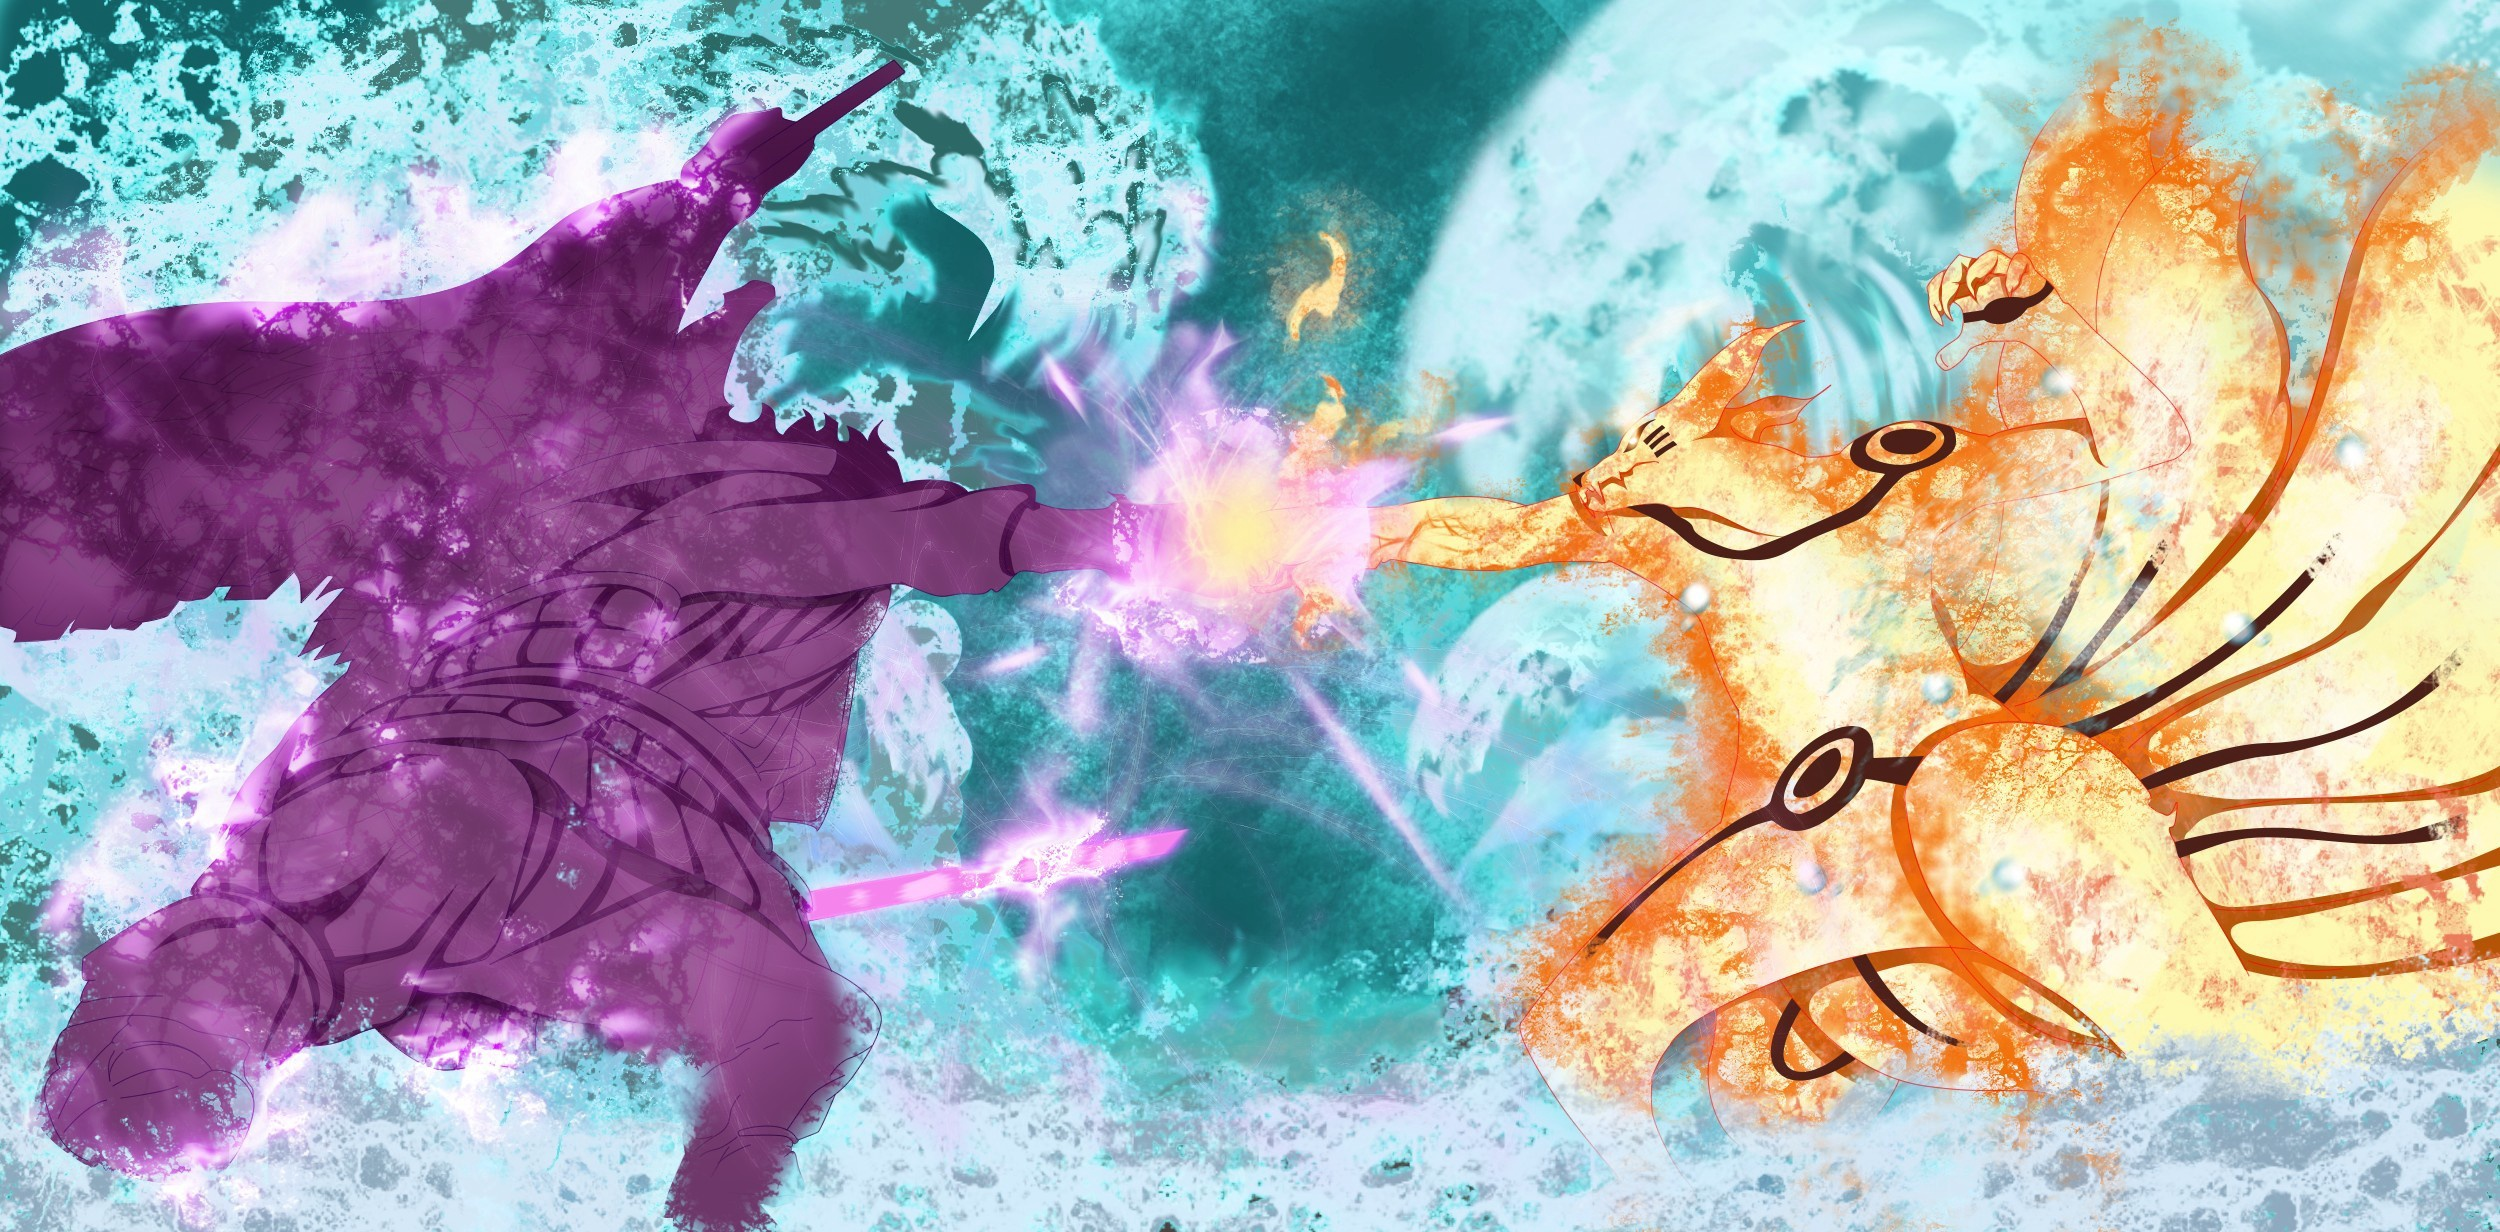 naruto vs sasuke hd wallpaper | background image | 2500x1232 | id